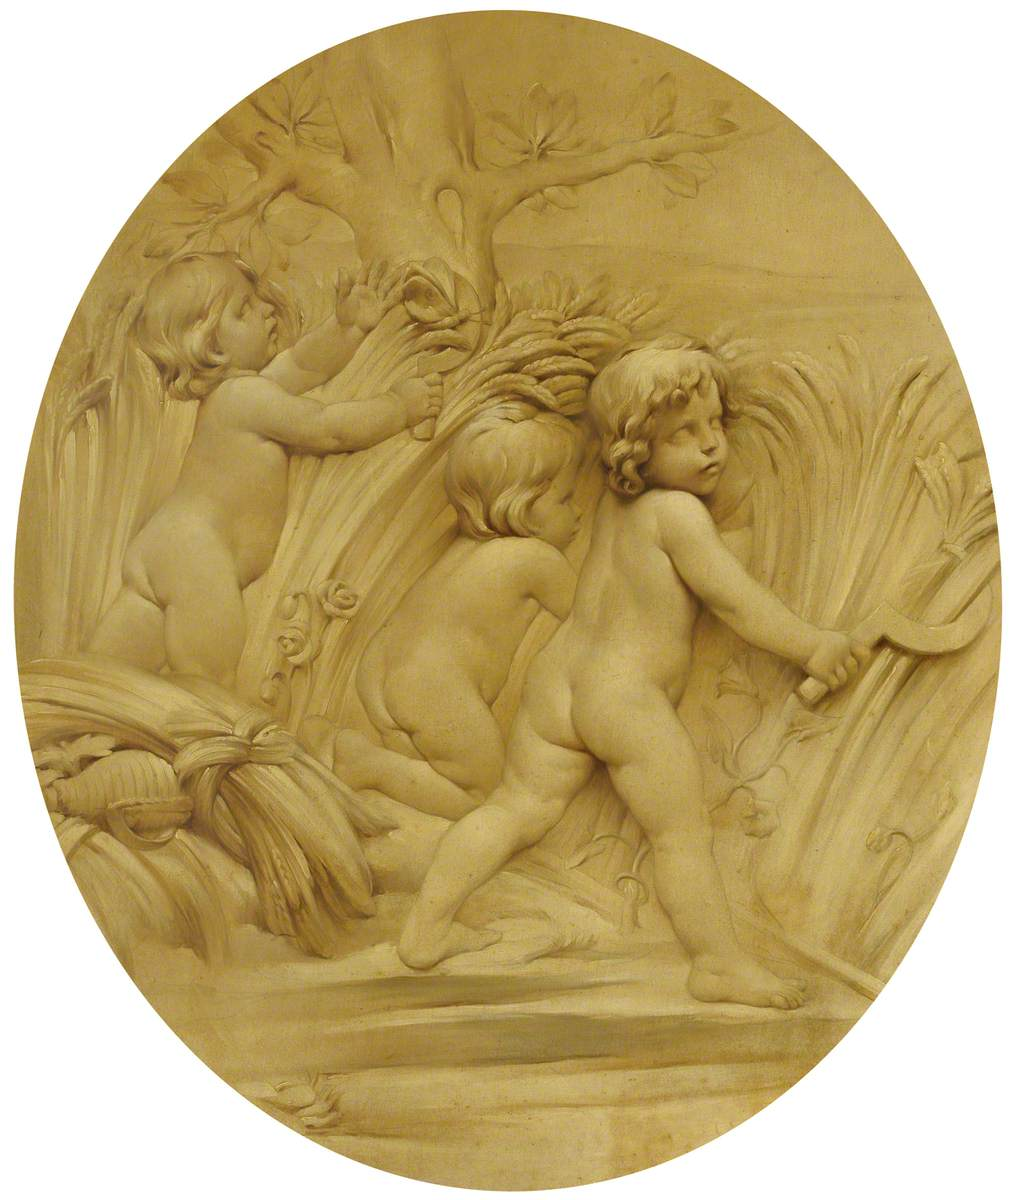 The Four Seasons: Summer, Putti Reaping